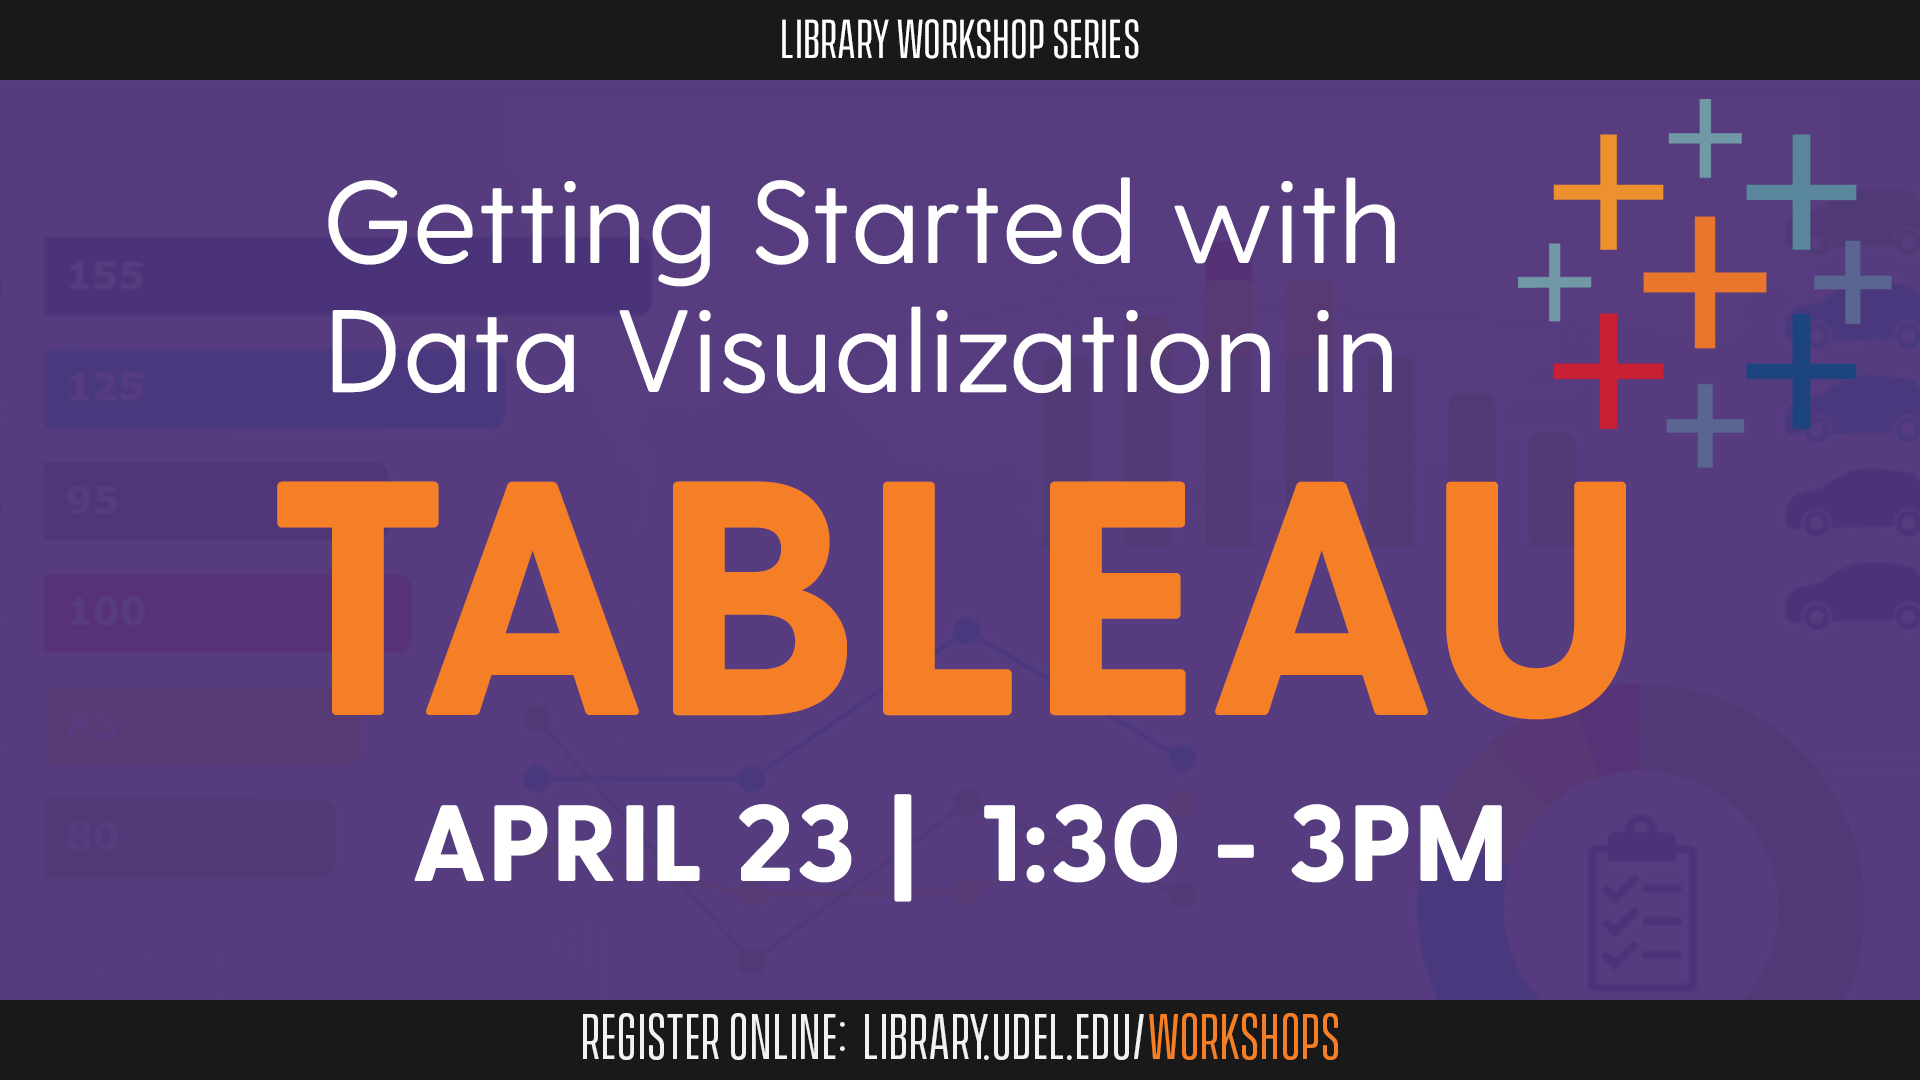 Promotional image for Getting Started with Data Visualization in Tableau